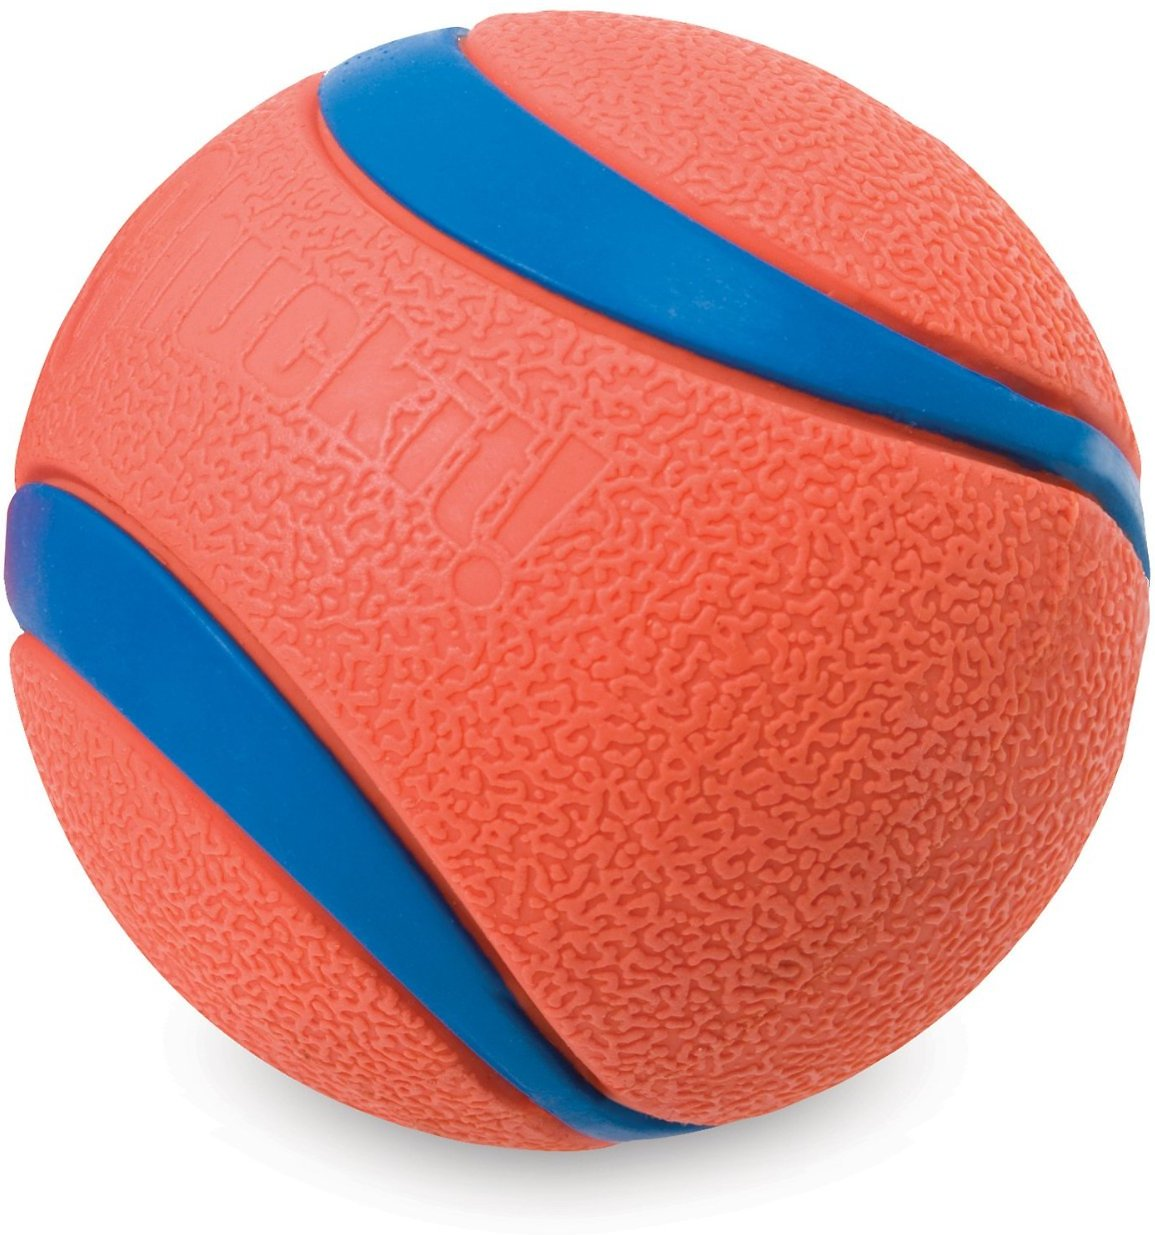 Rubber Ball Dog Toy : Chuckit ultra rubber ball dog toy medium pack chewy